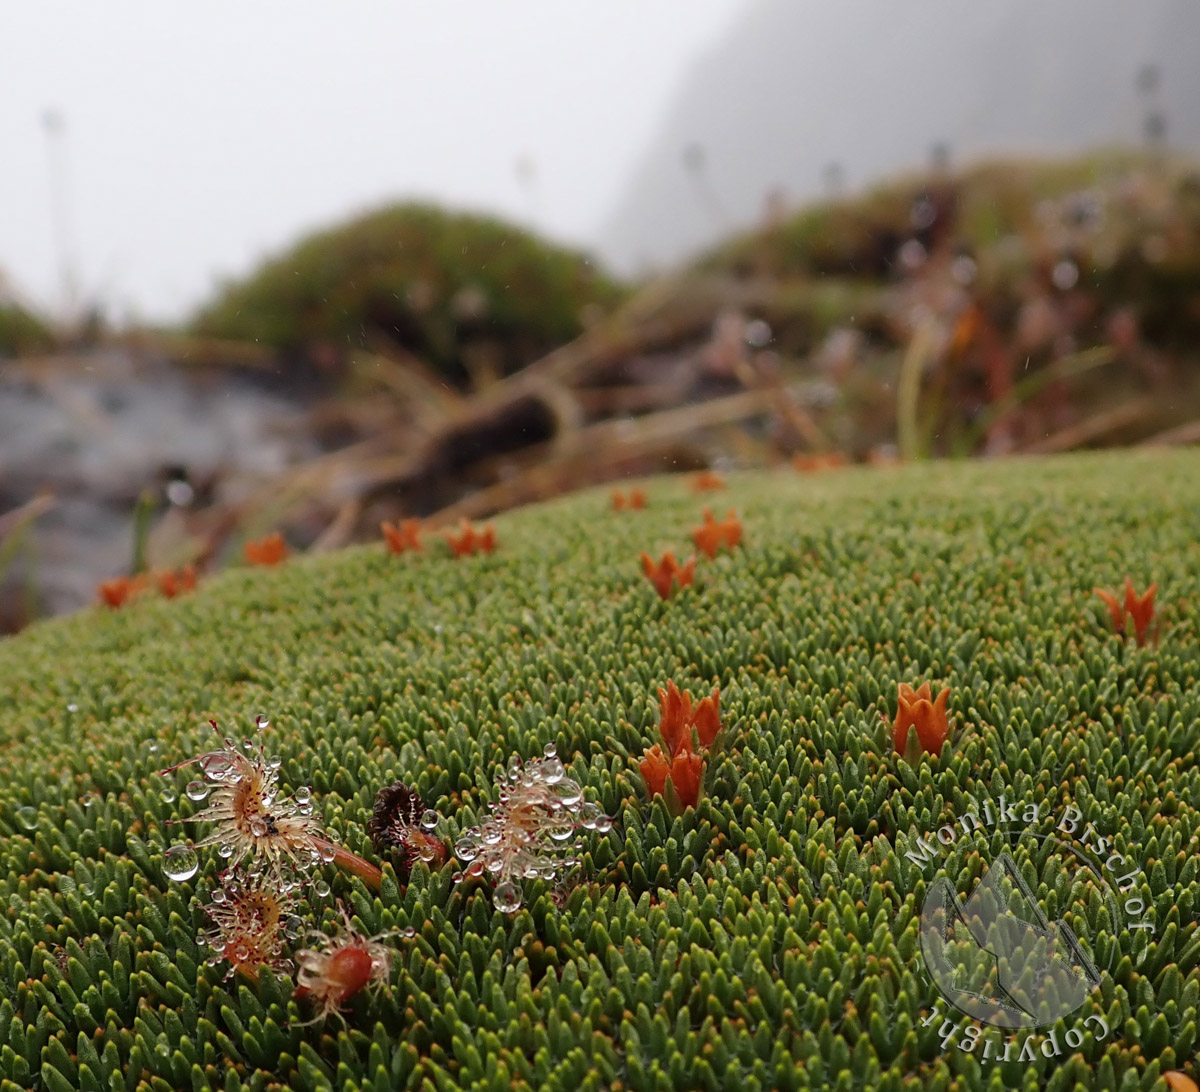 cushion plant and sundew, New Zealand alpine flowers